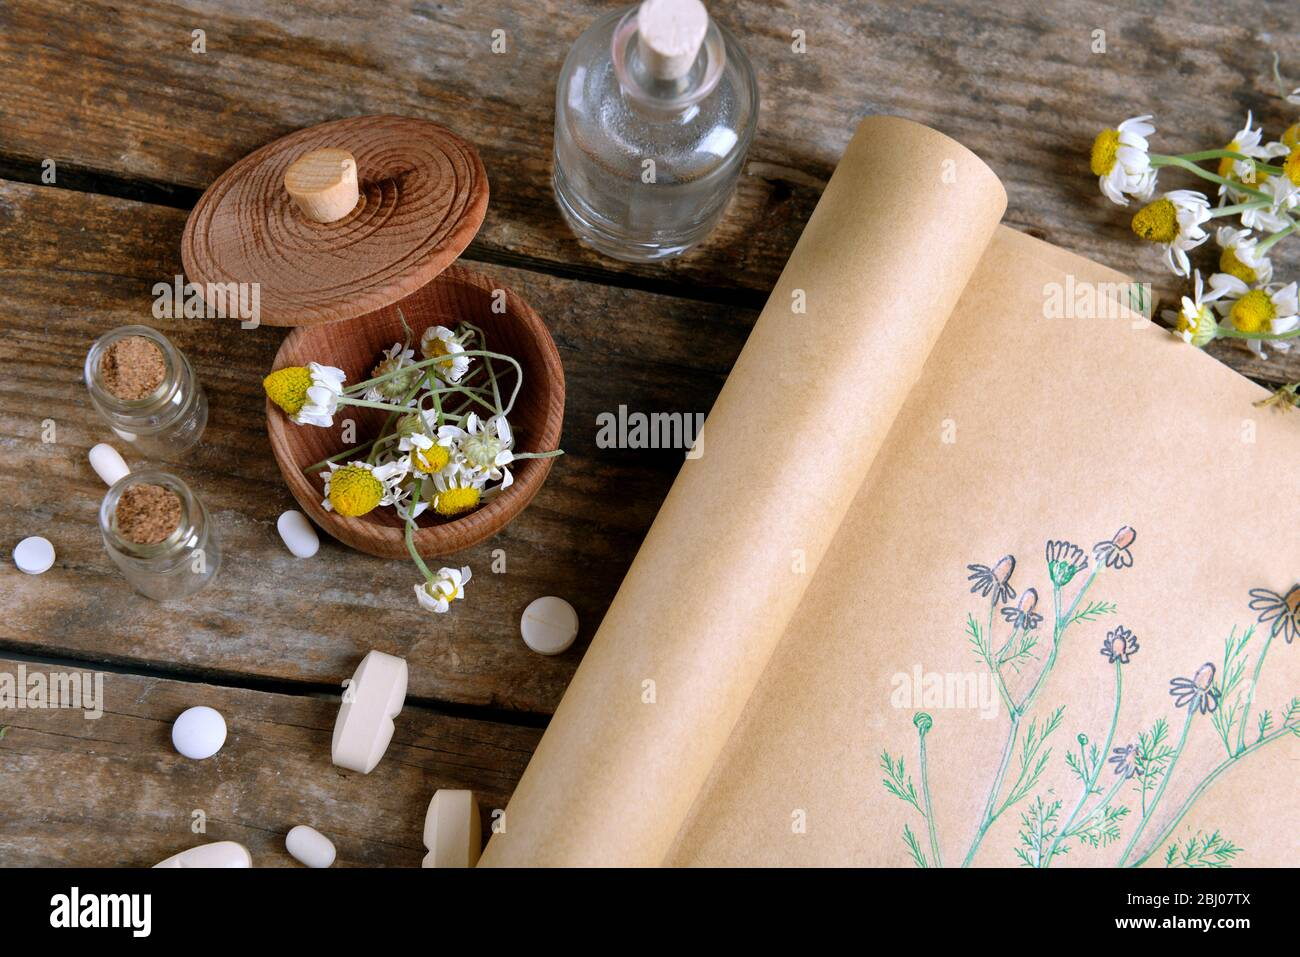 Old book with dry flowers in mortar on table close up Stock Photo